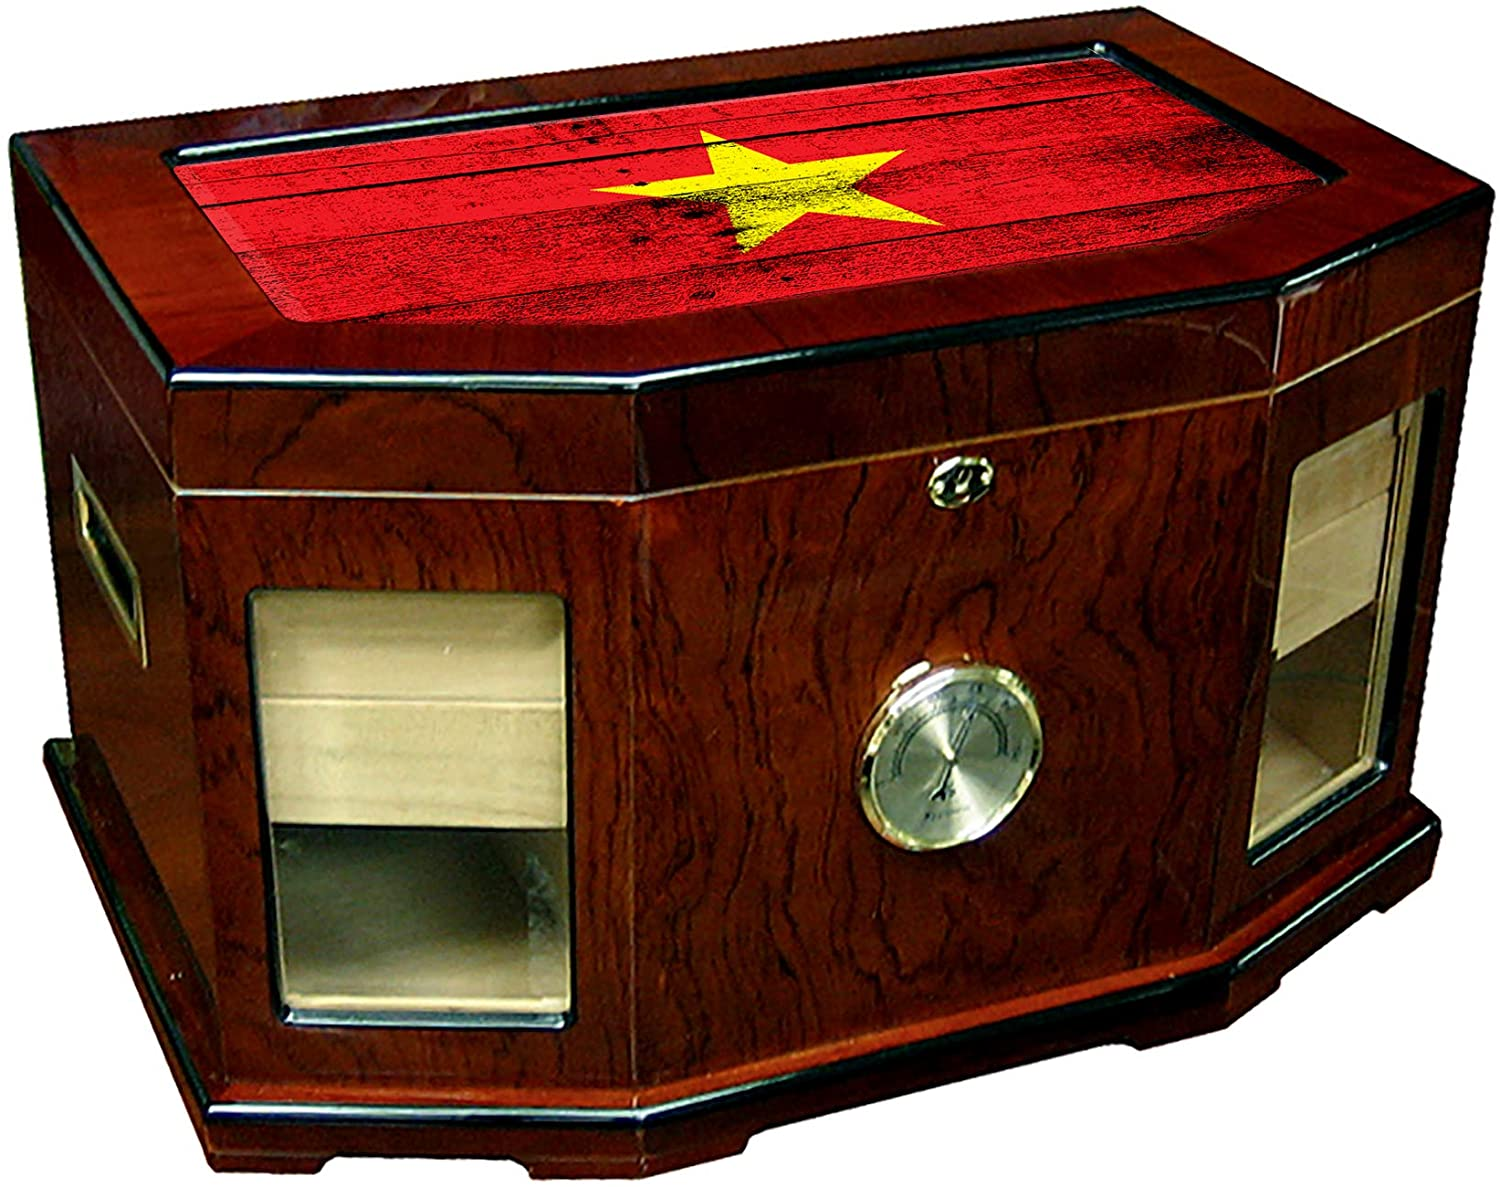 Large Premium Desktop Humidor - Glass Top - Flag of Viet NAM (Vietnamese) - Wood Design - 300 Cigar Capacity - Cedar Lined with Two humidifiers & Large Front Mounted Hygrometer.